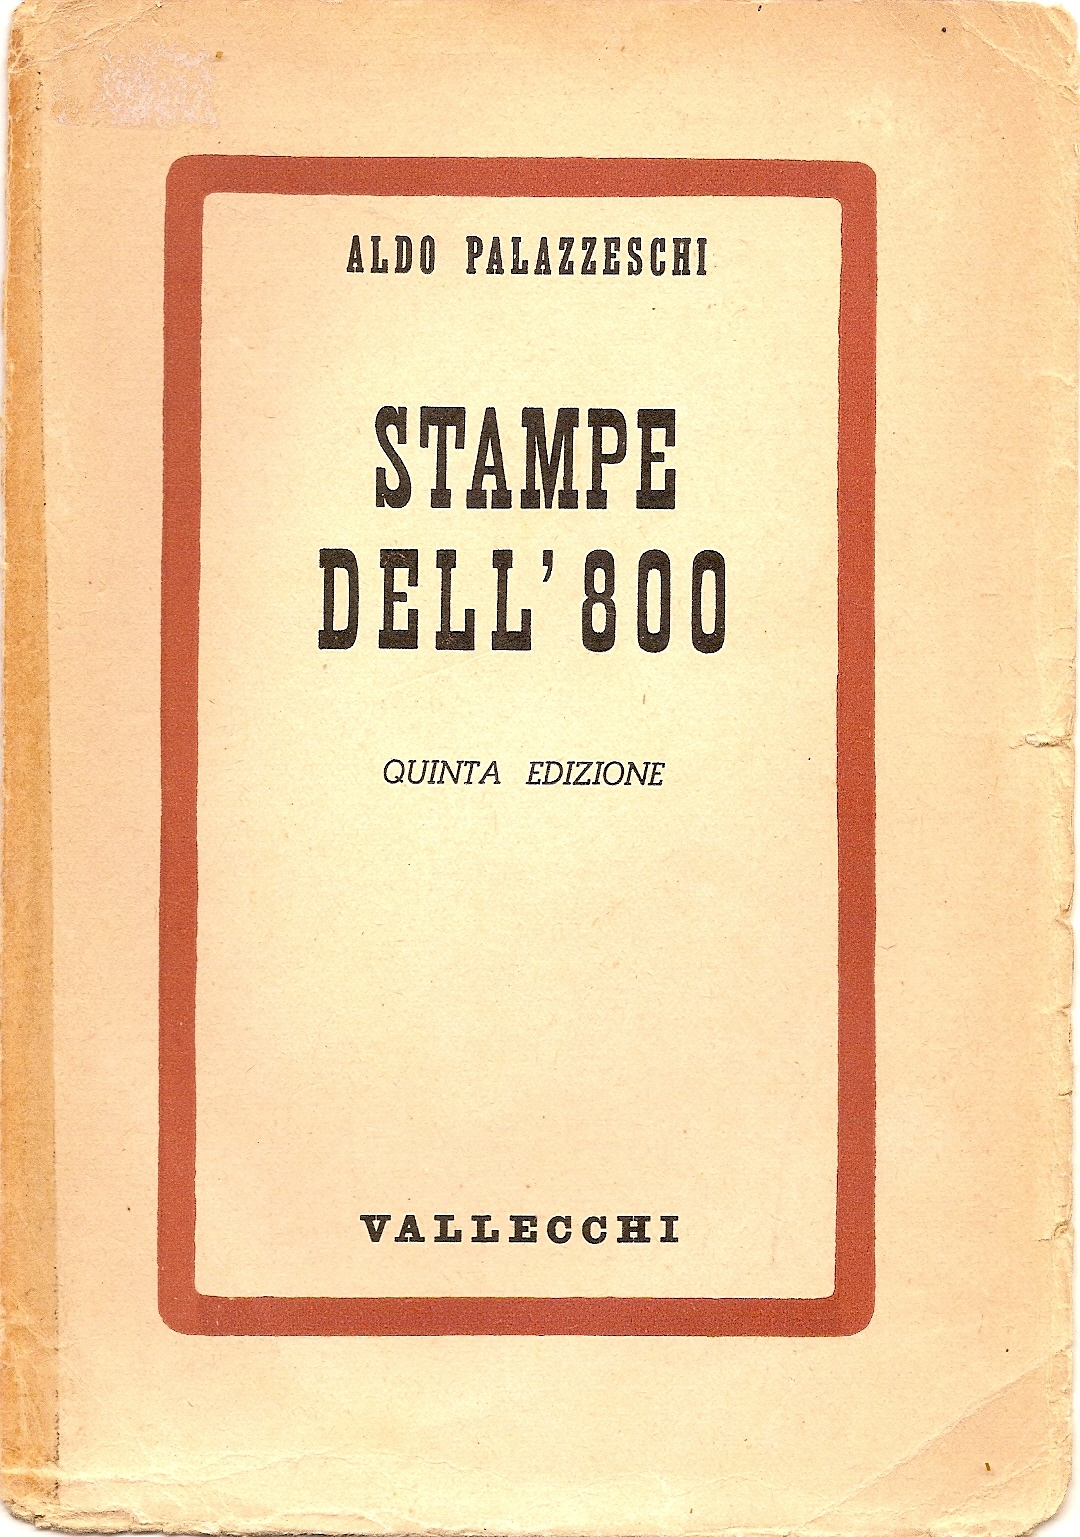 Stampe dell'800